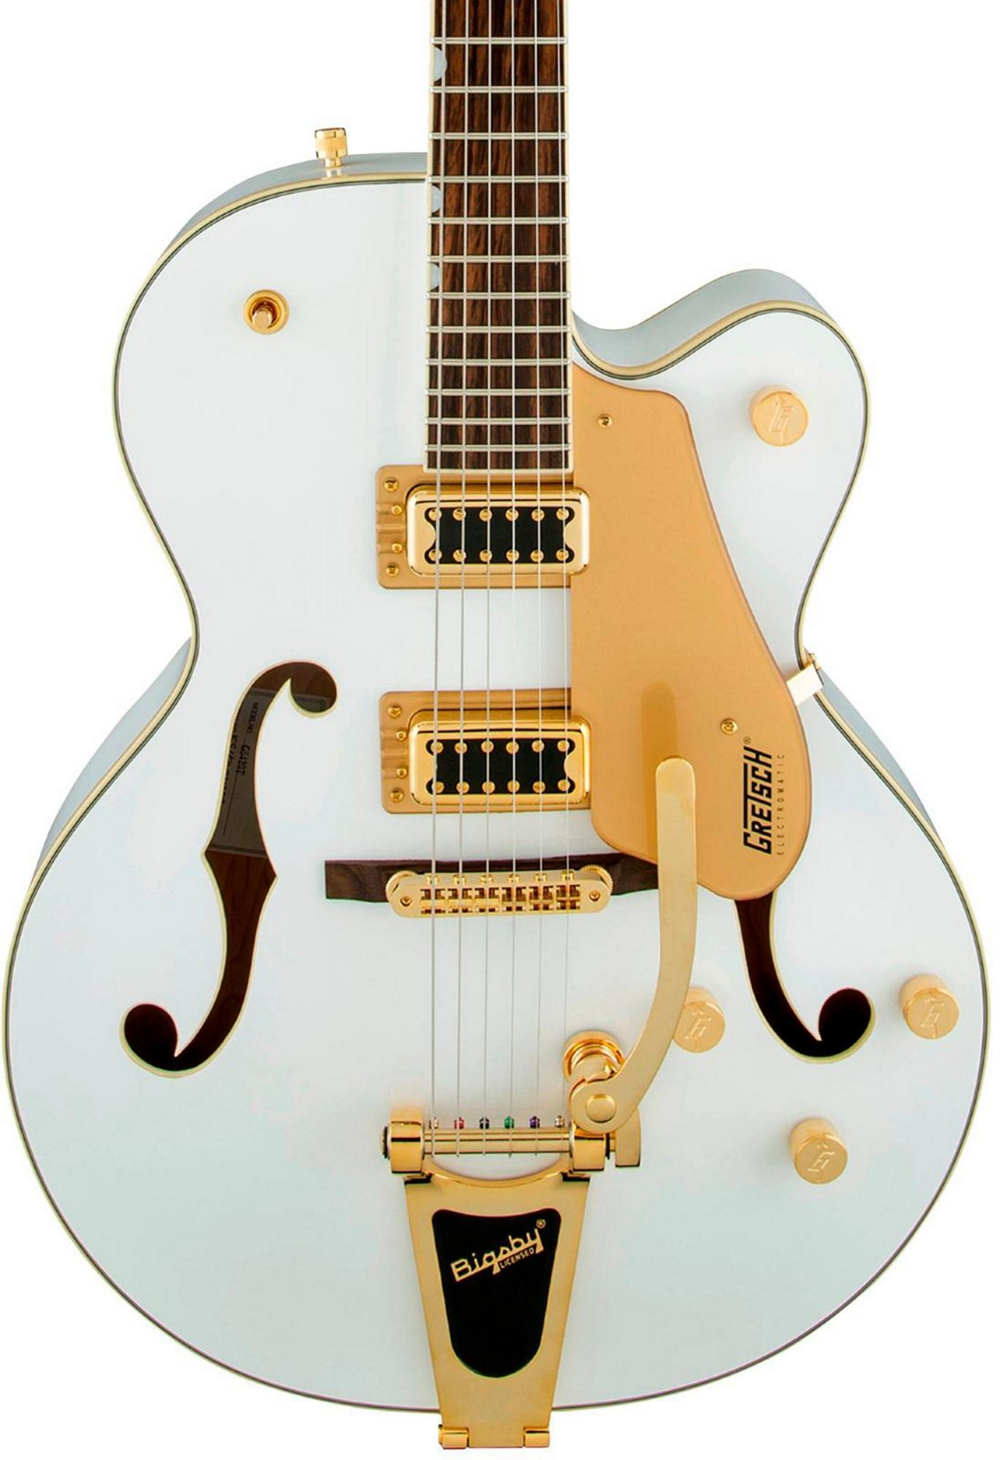 gretsch guitars g5420t electromatic hollow body electric guitar snow crest white ebay. Black Bedroom Furniture Sets. Home Design Ideas